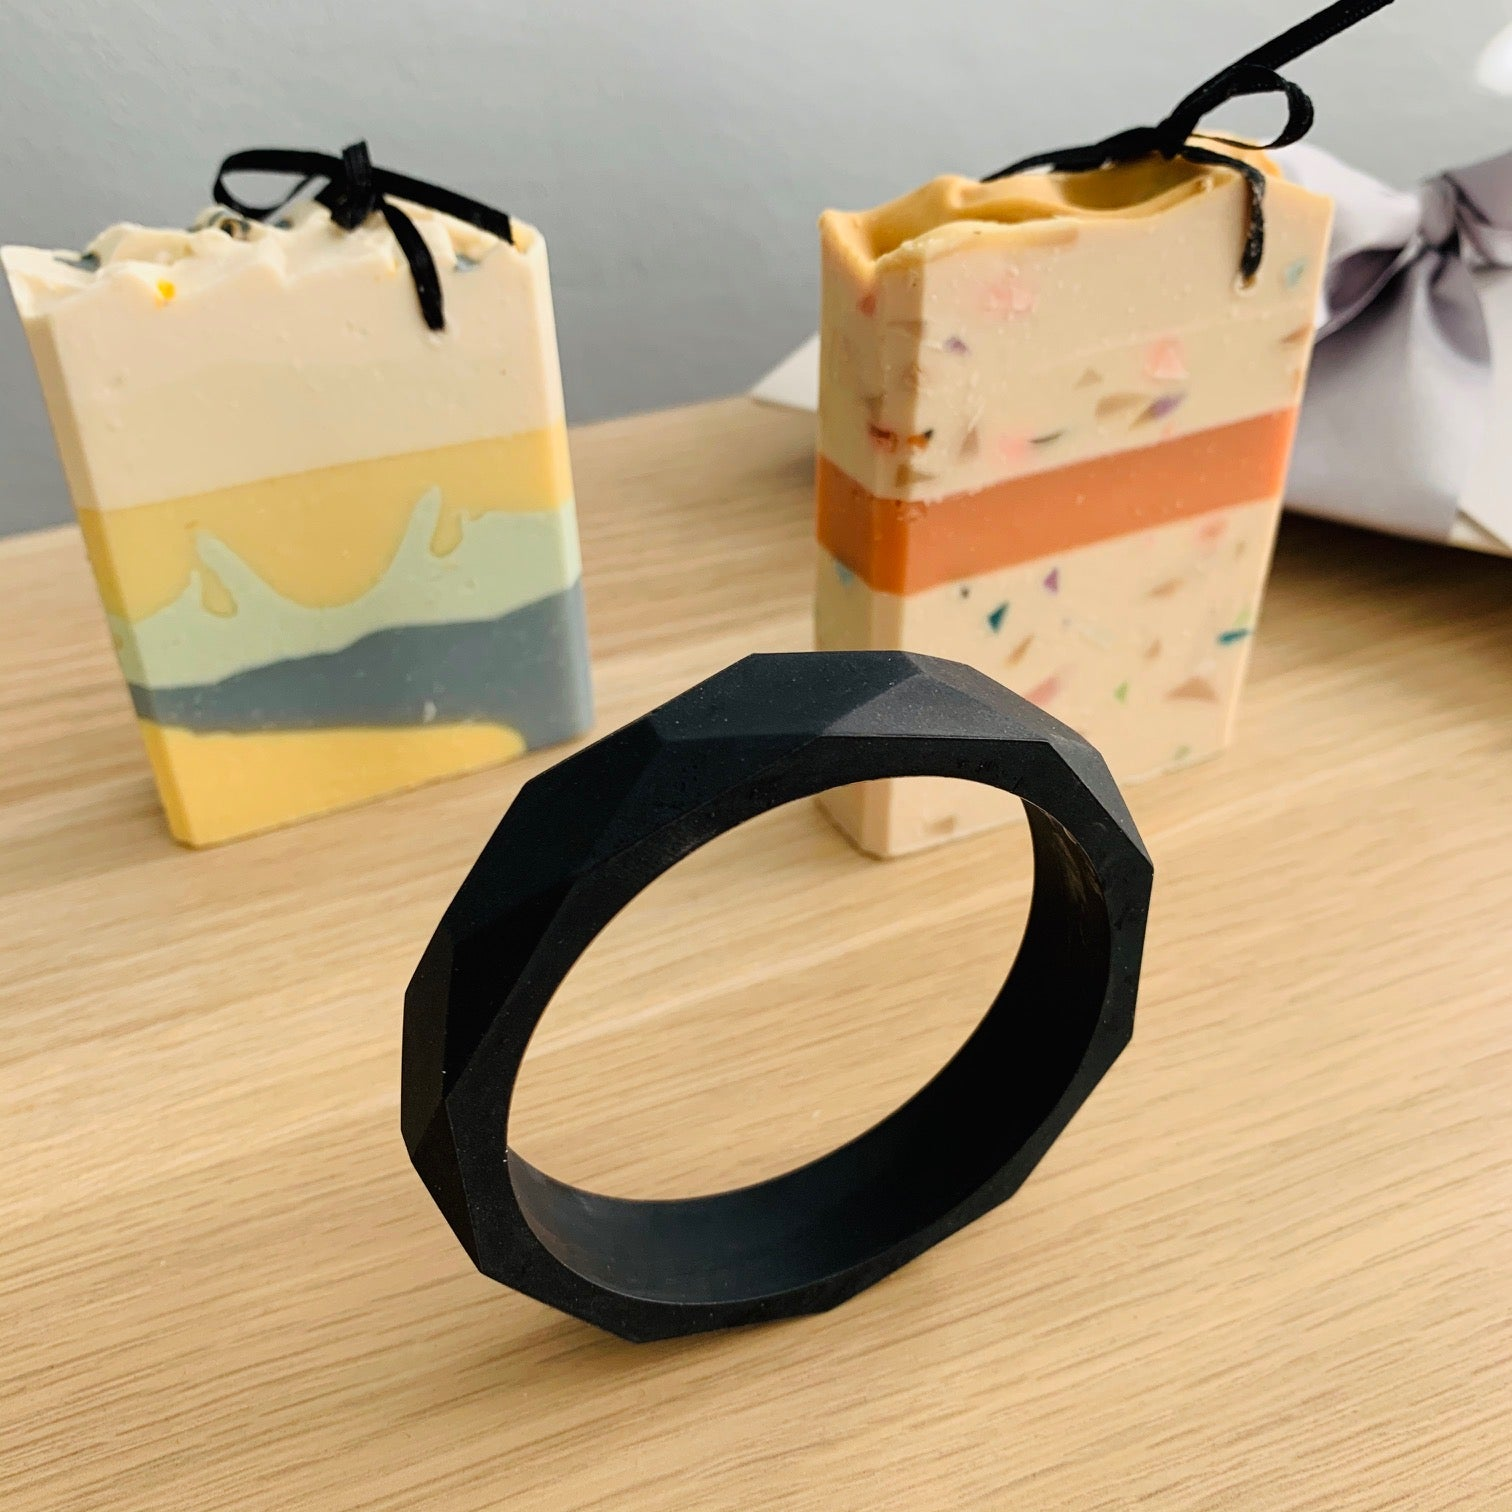 Bayside Gifts - Like it Like Matt Black - Bangle and Designer Soaps - Baysideluxe